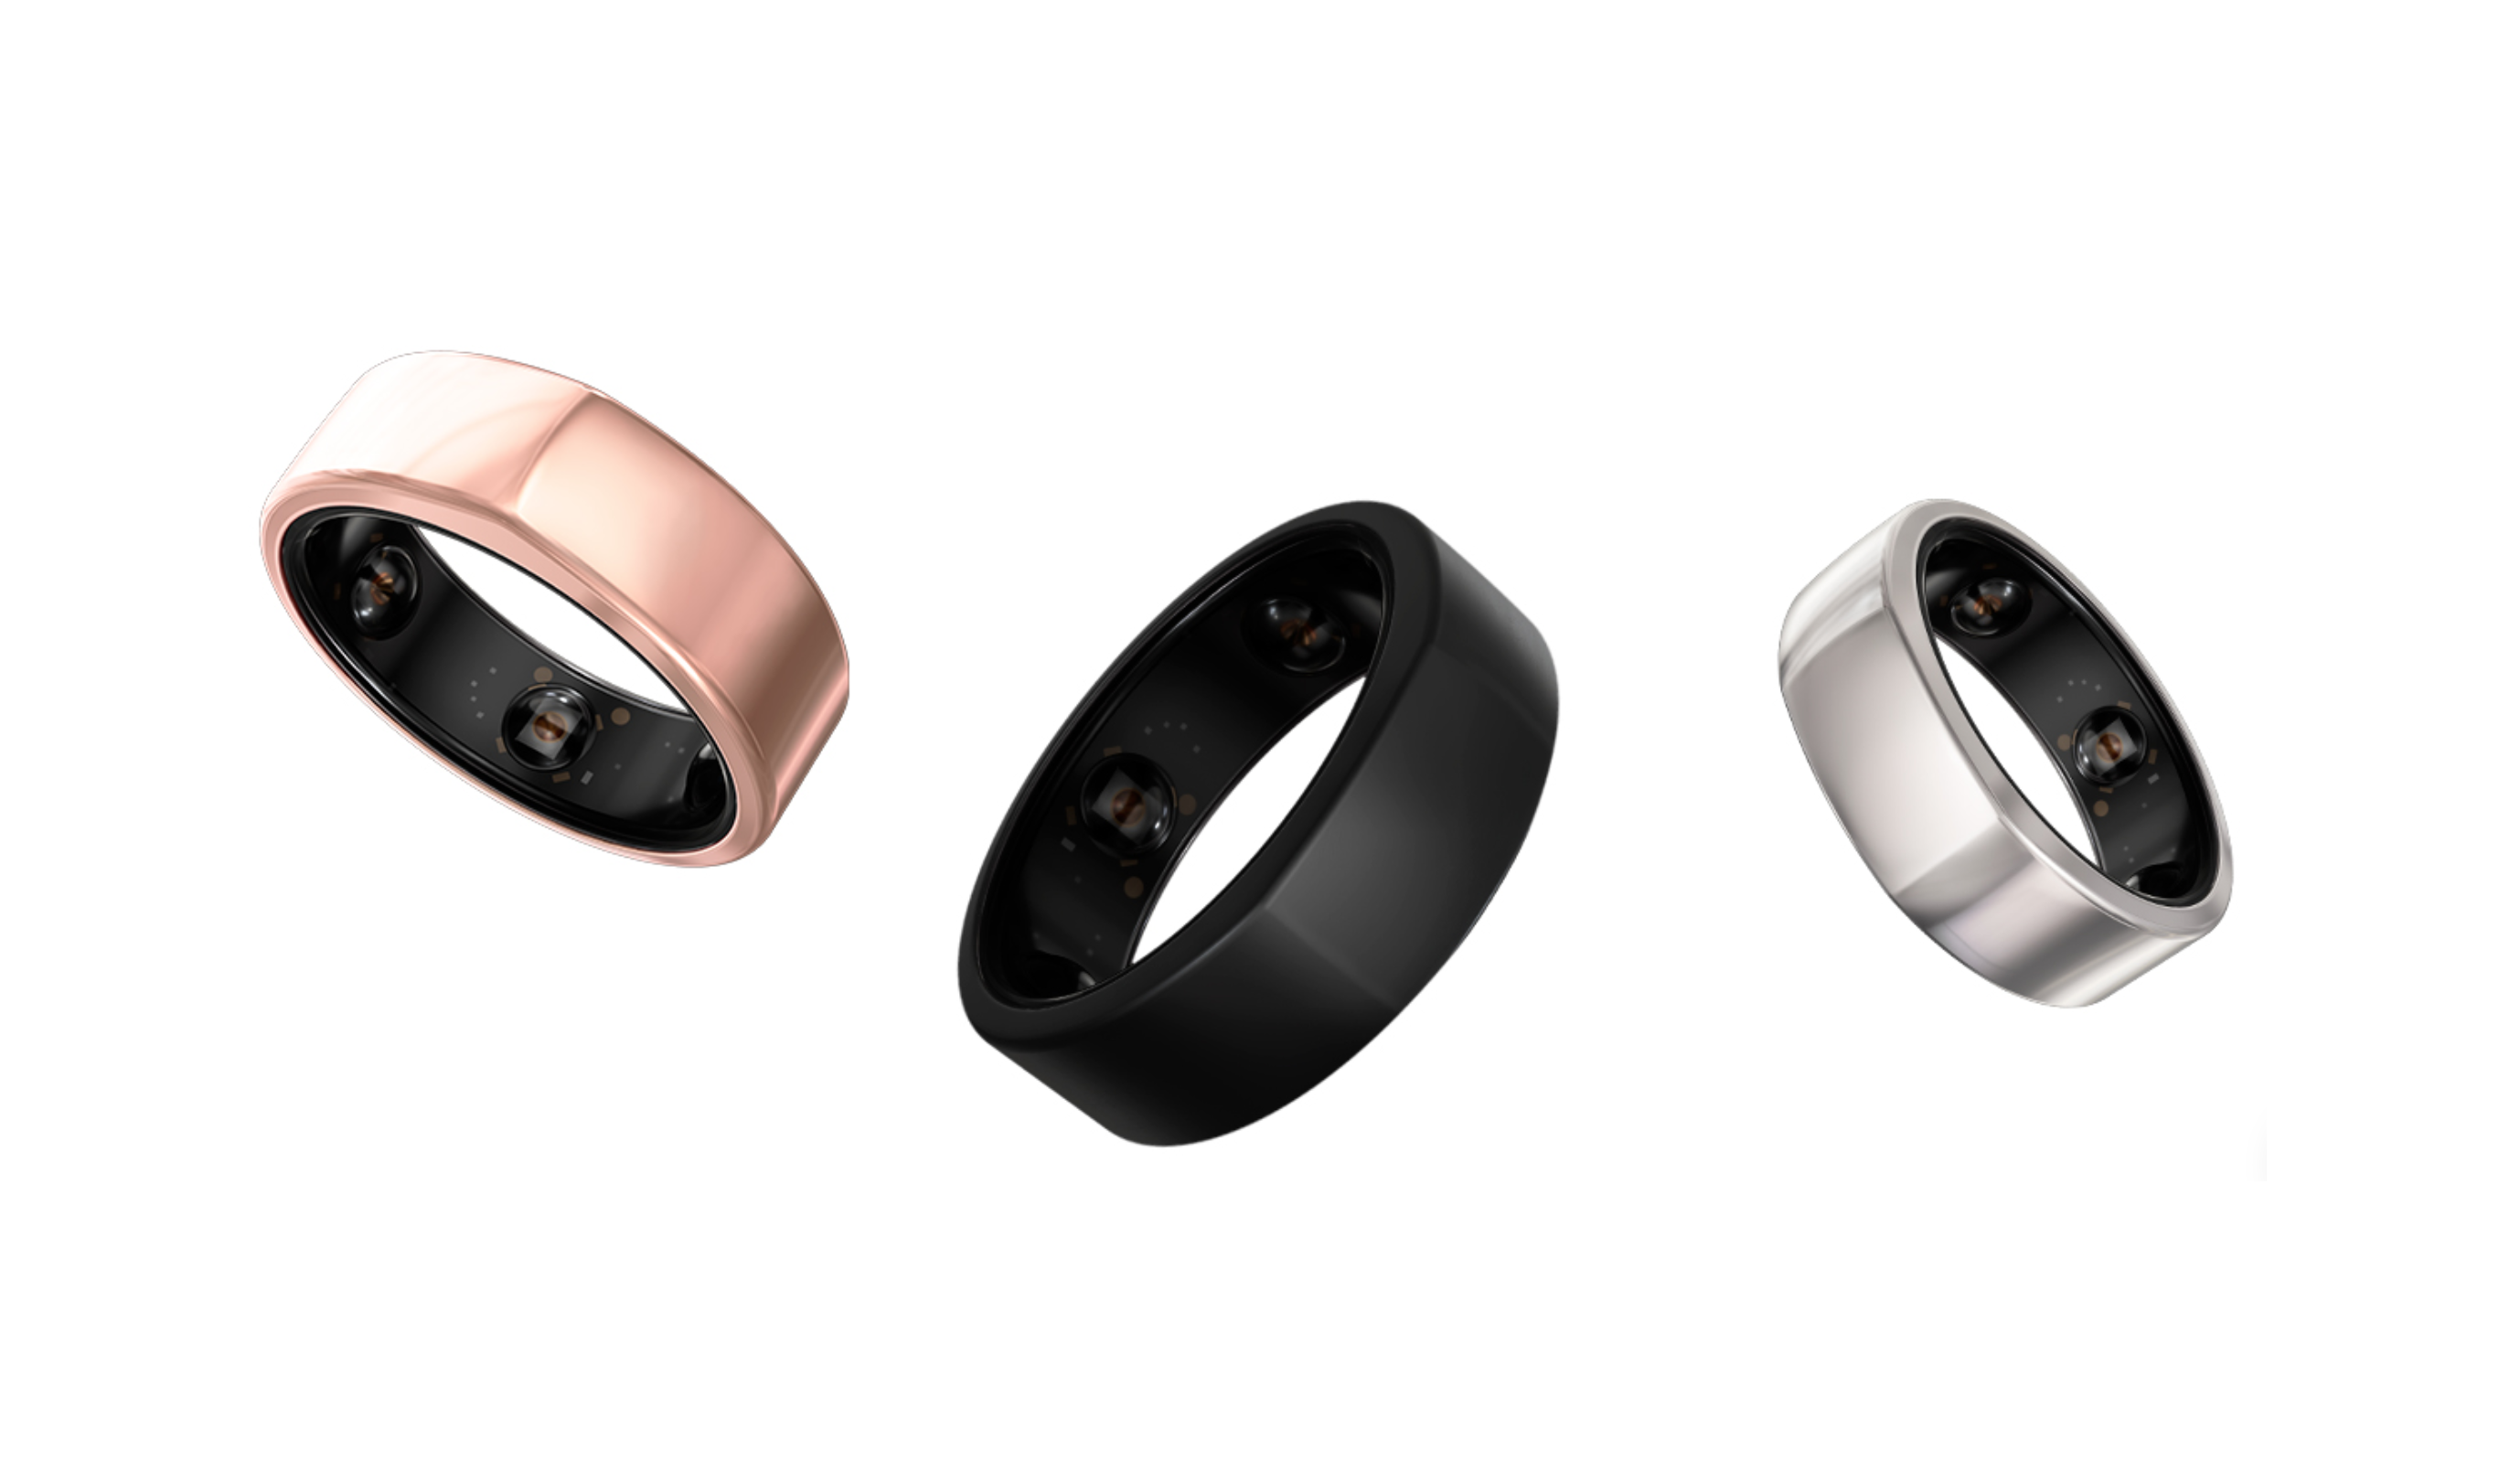 A photo of the Oura smart ring